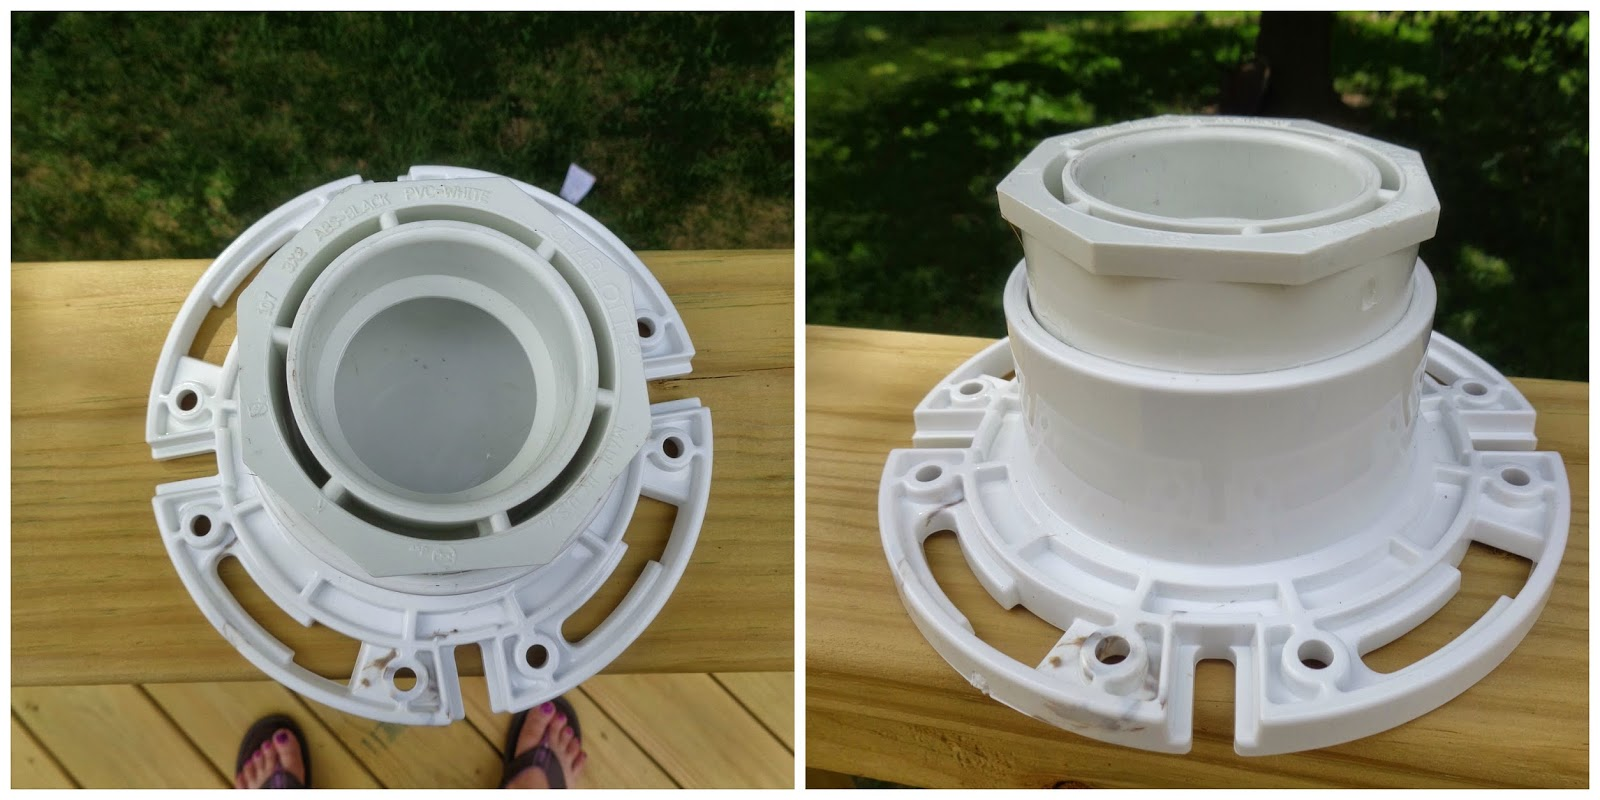 It's My Life: My Weekend Project: A PVC Camping Lamp Post ...